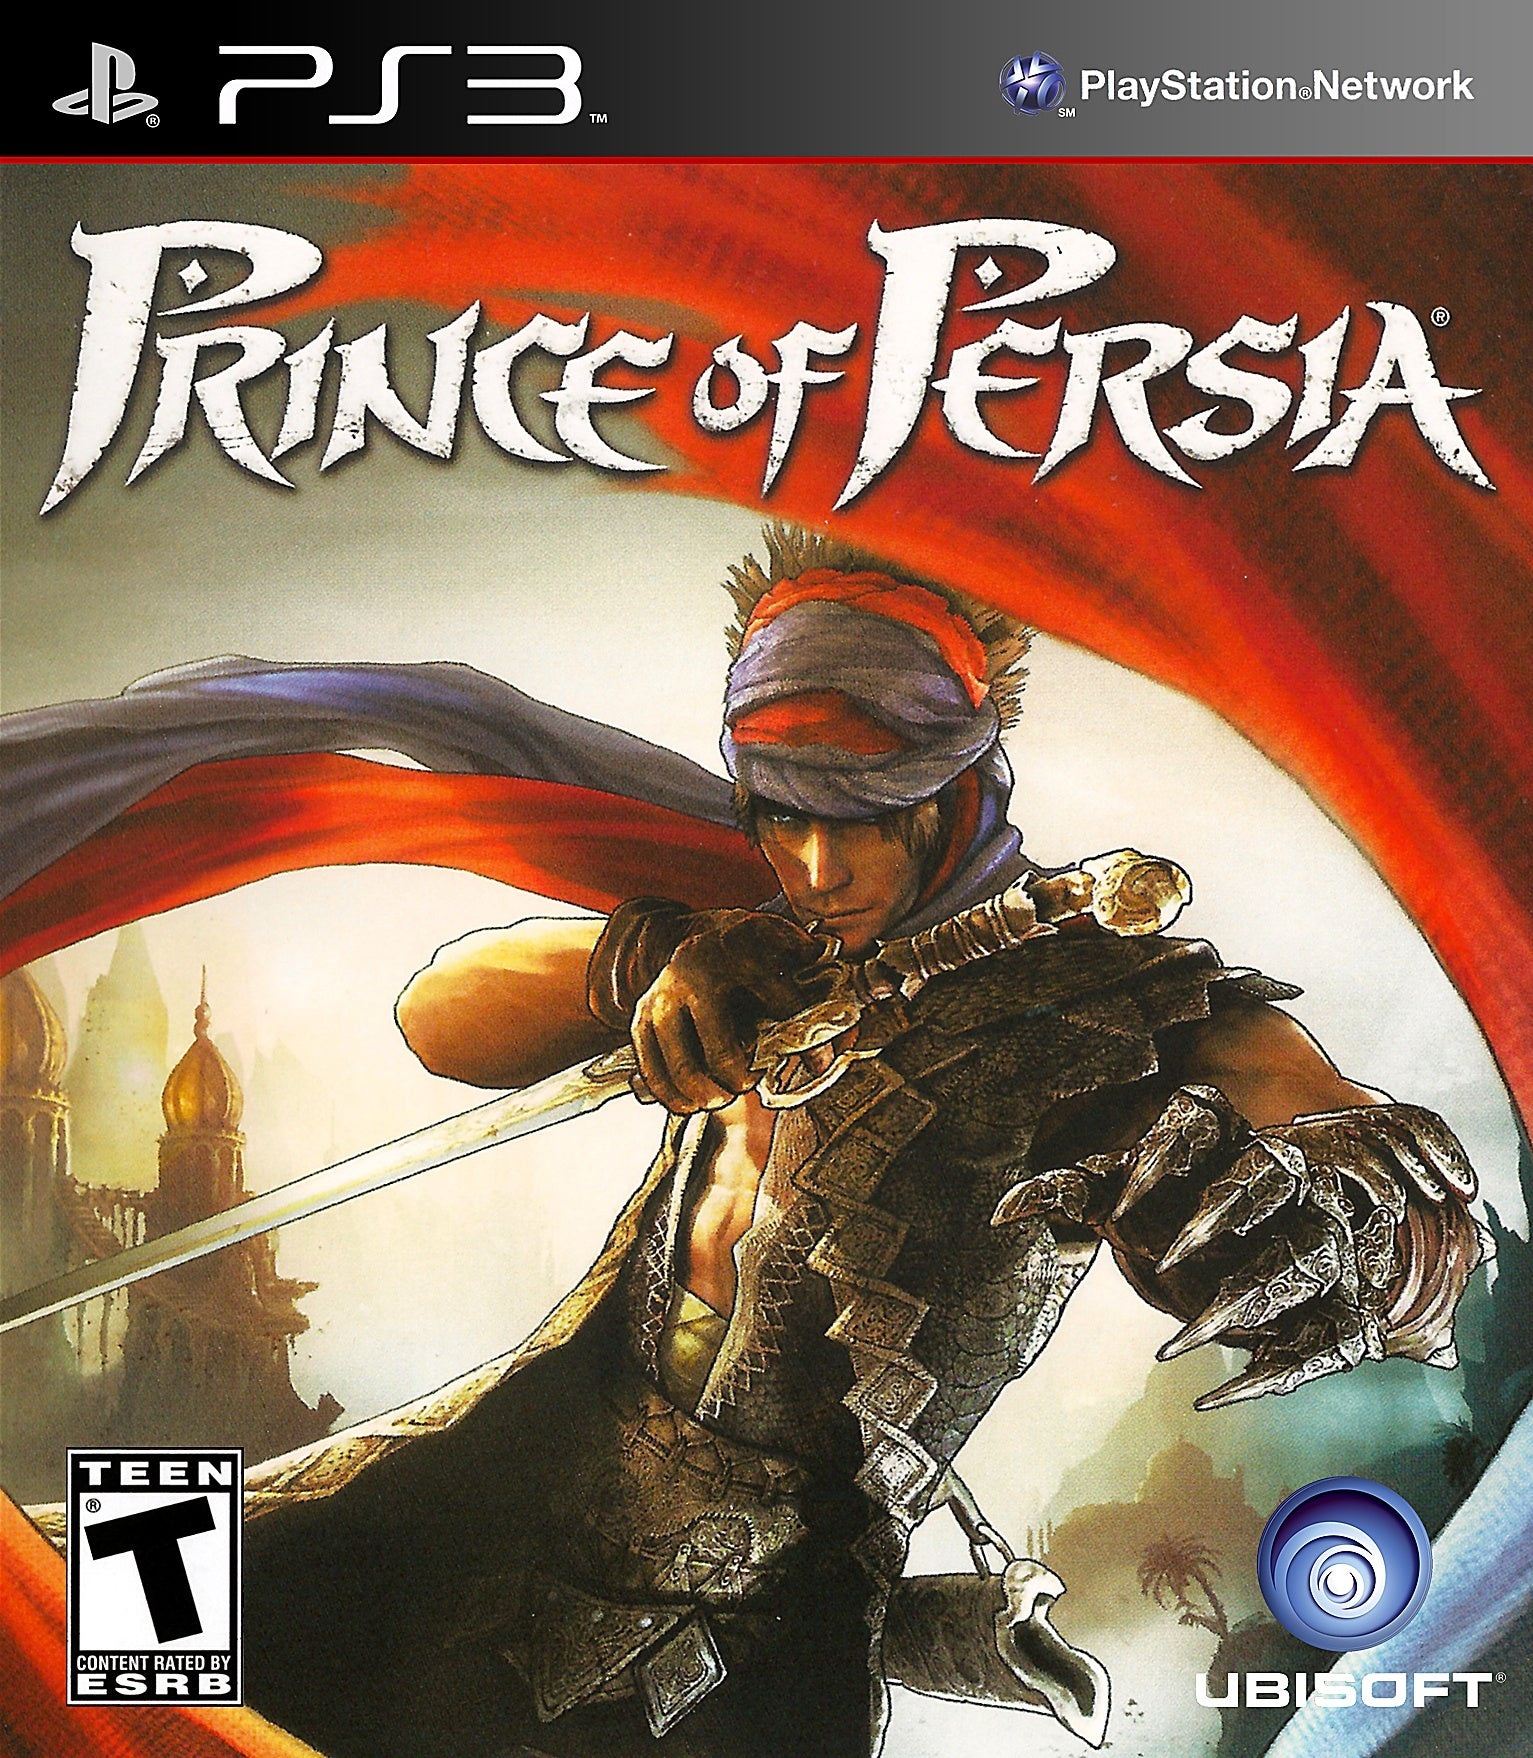 Prince of Persia - PS3 (Pre-owned)